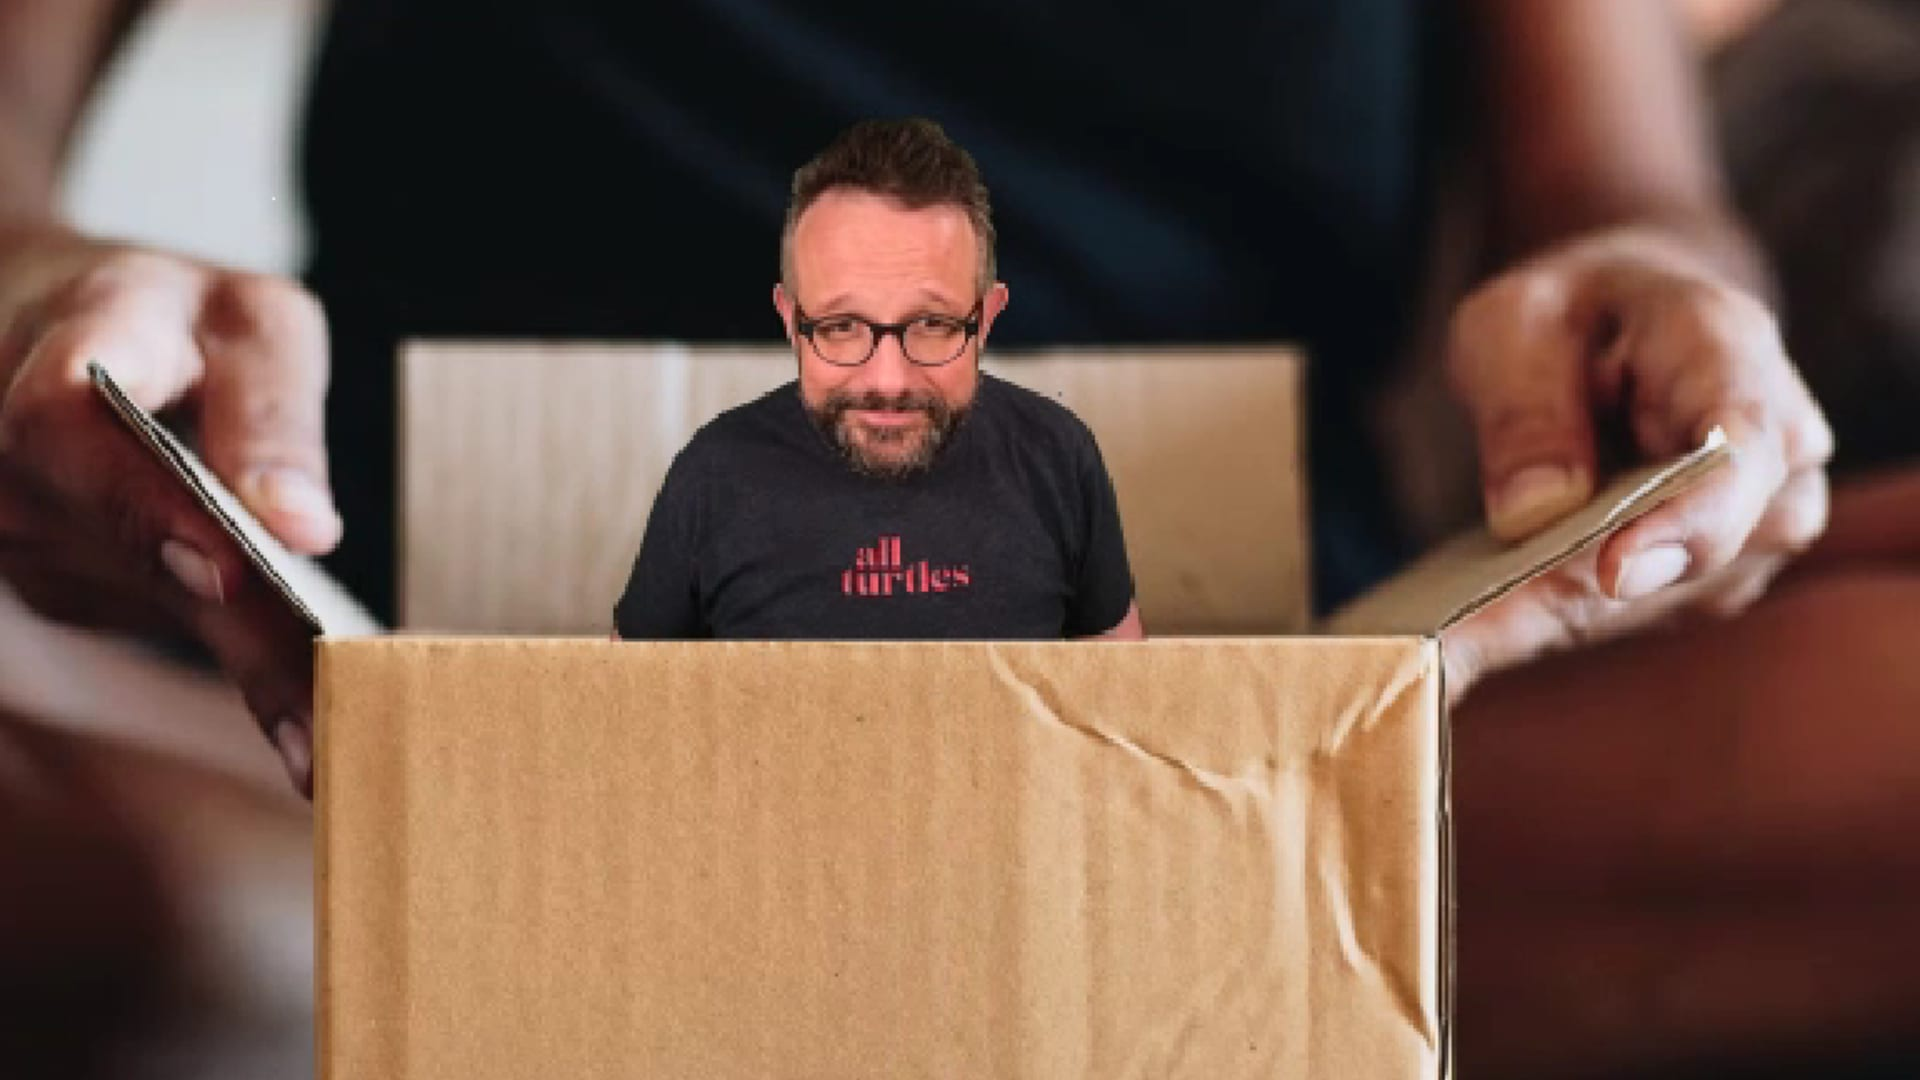 Phil Libin, CEO of All Turtles and Mmhmm